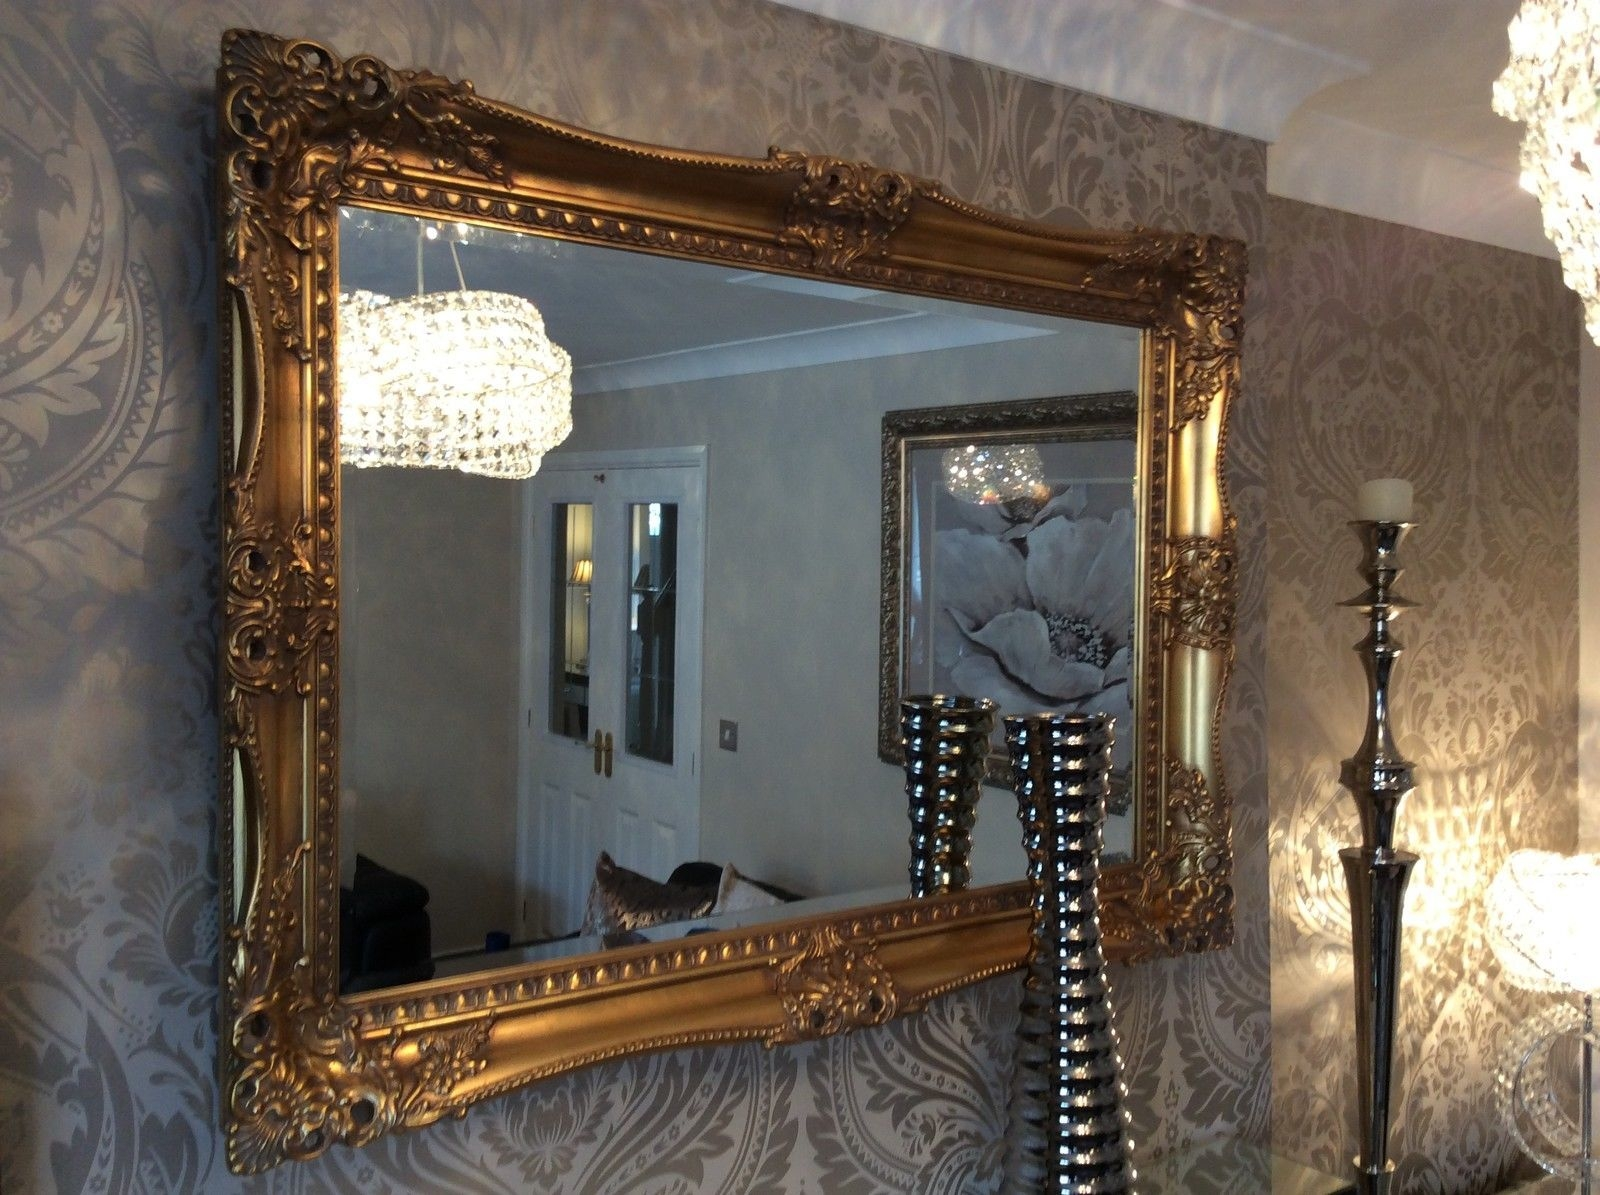 X Large Antique Gold Shab Chic Ornate Decorative Wall Mirror Regarding Antique Gold Mirror Large (Image 15 of 15)